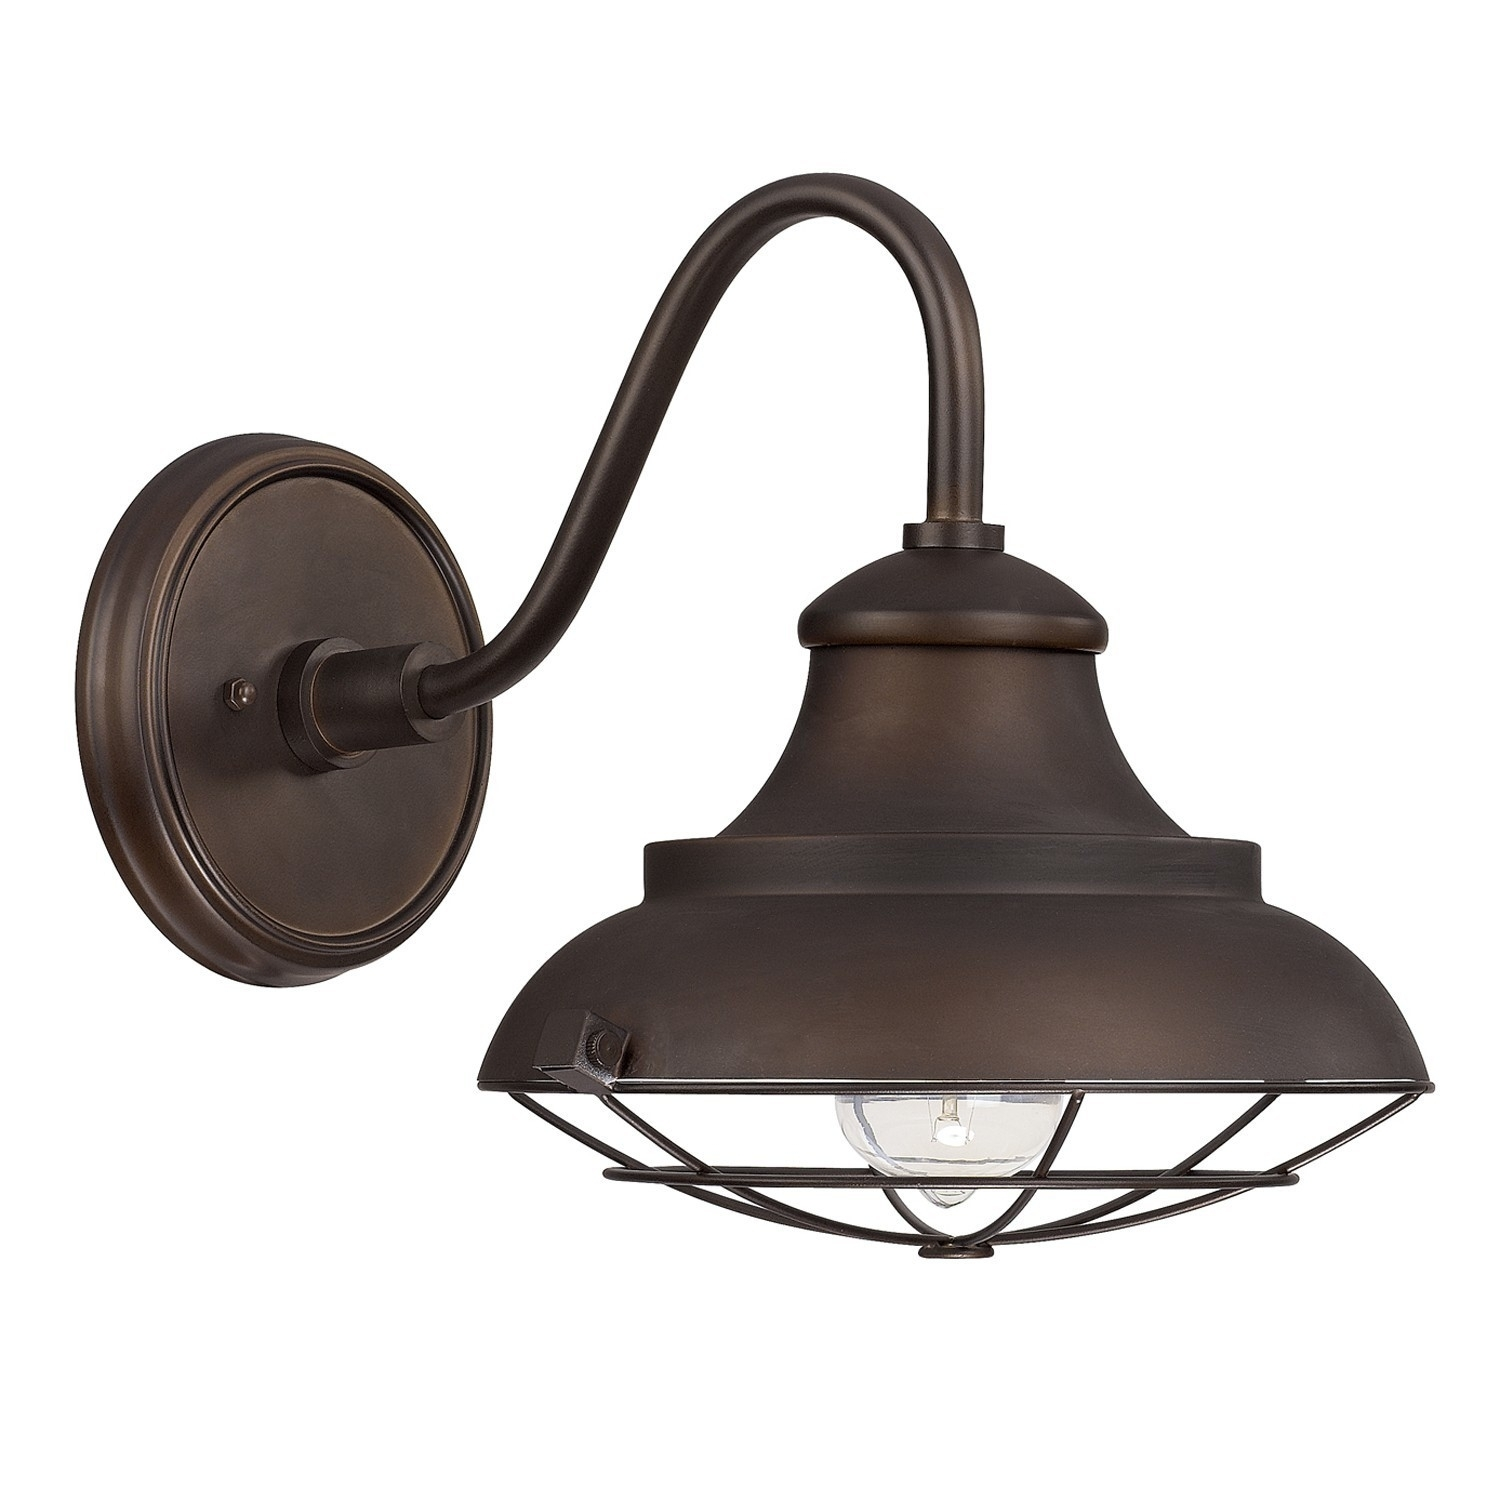 Kichler 7 12 Inch Nautical Outdoor Wall Light With Led Bulb With Regard To Pottery Barn Outdoor Wall Lighting (#4 of 15)